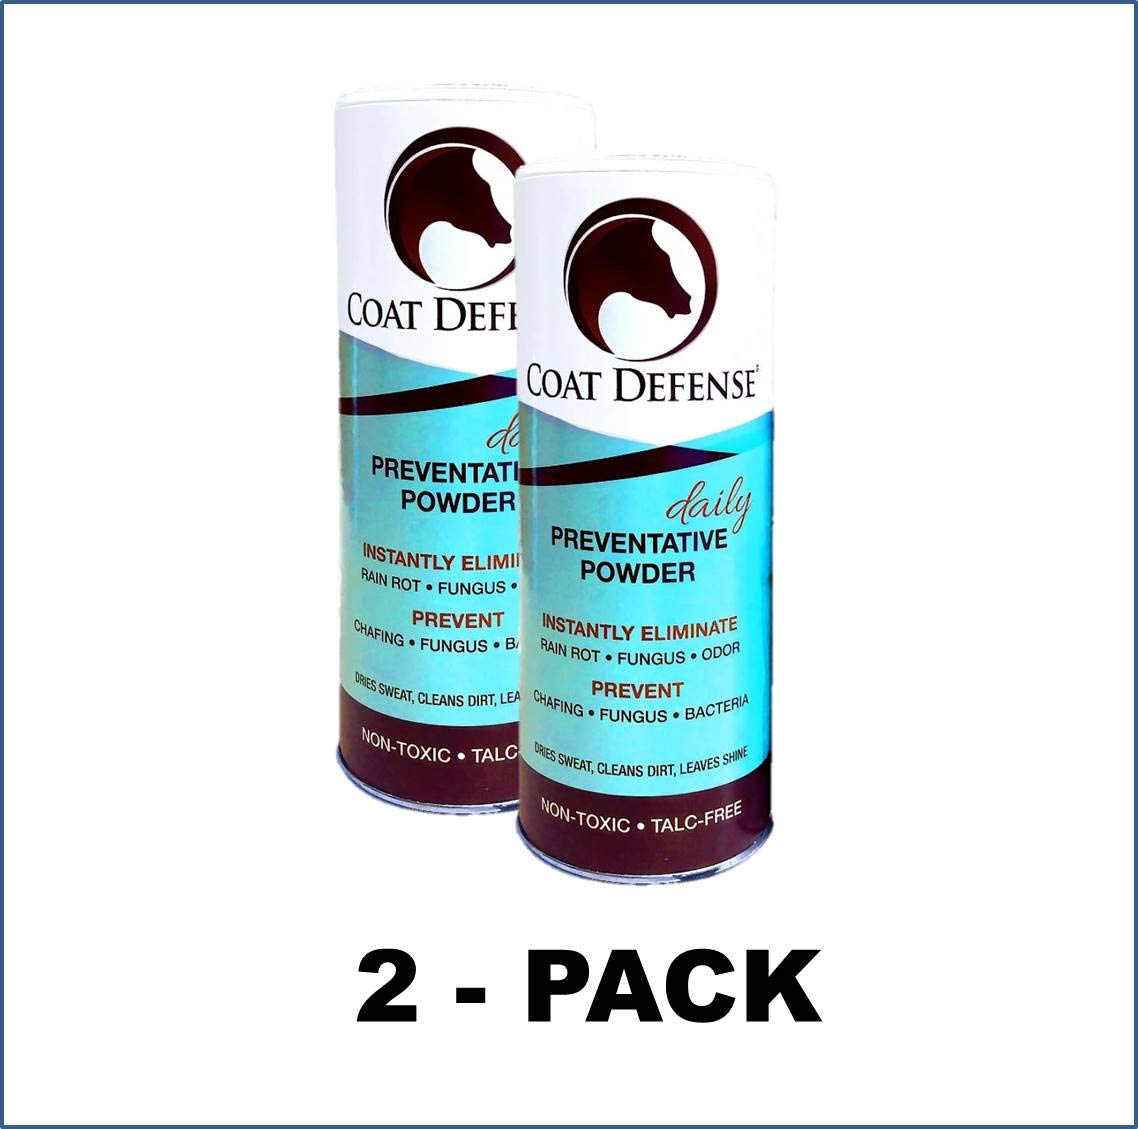 Coat Defense Daily Preventative Powder for Horses. Cleans and Deodorizes Without Water. Shake On, Work in, Brush Out. Eliminates Odor, Bacteria, Fungi, Rain Rot. Safe. Talc-Free. Made in USA (2 Pack) by Coat Defense (Image #1)